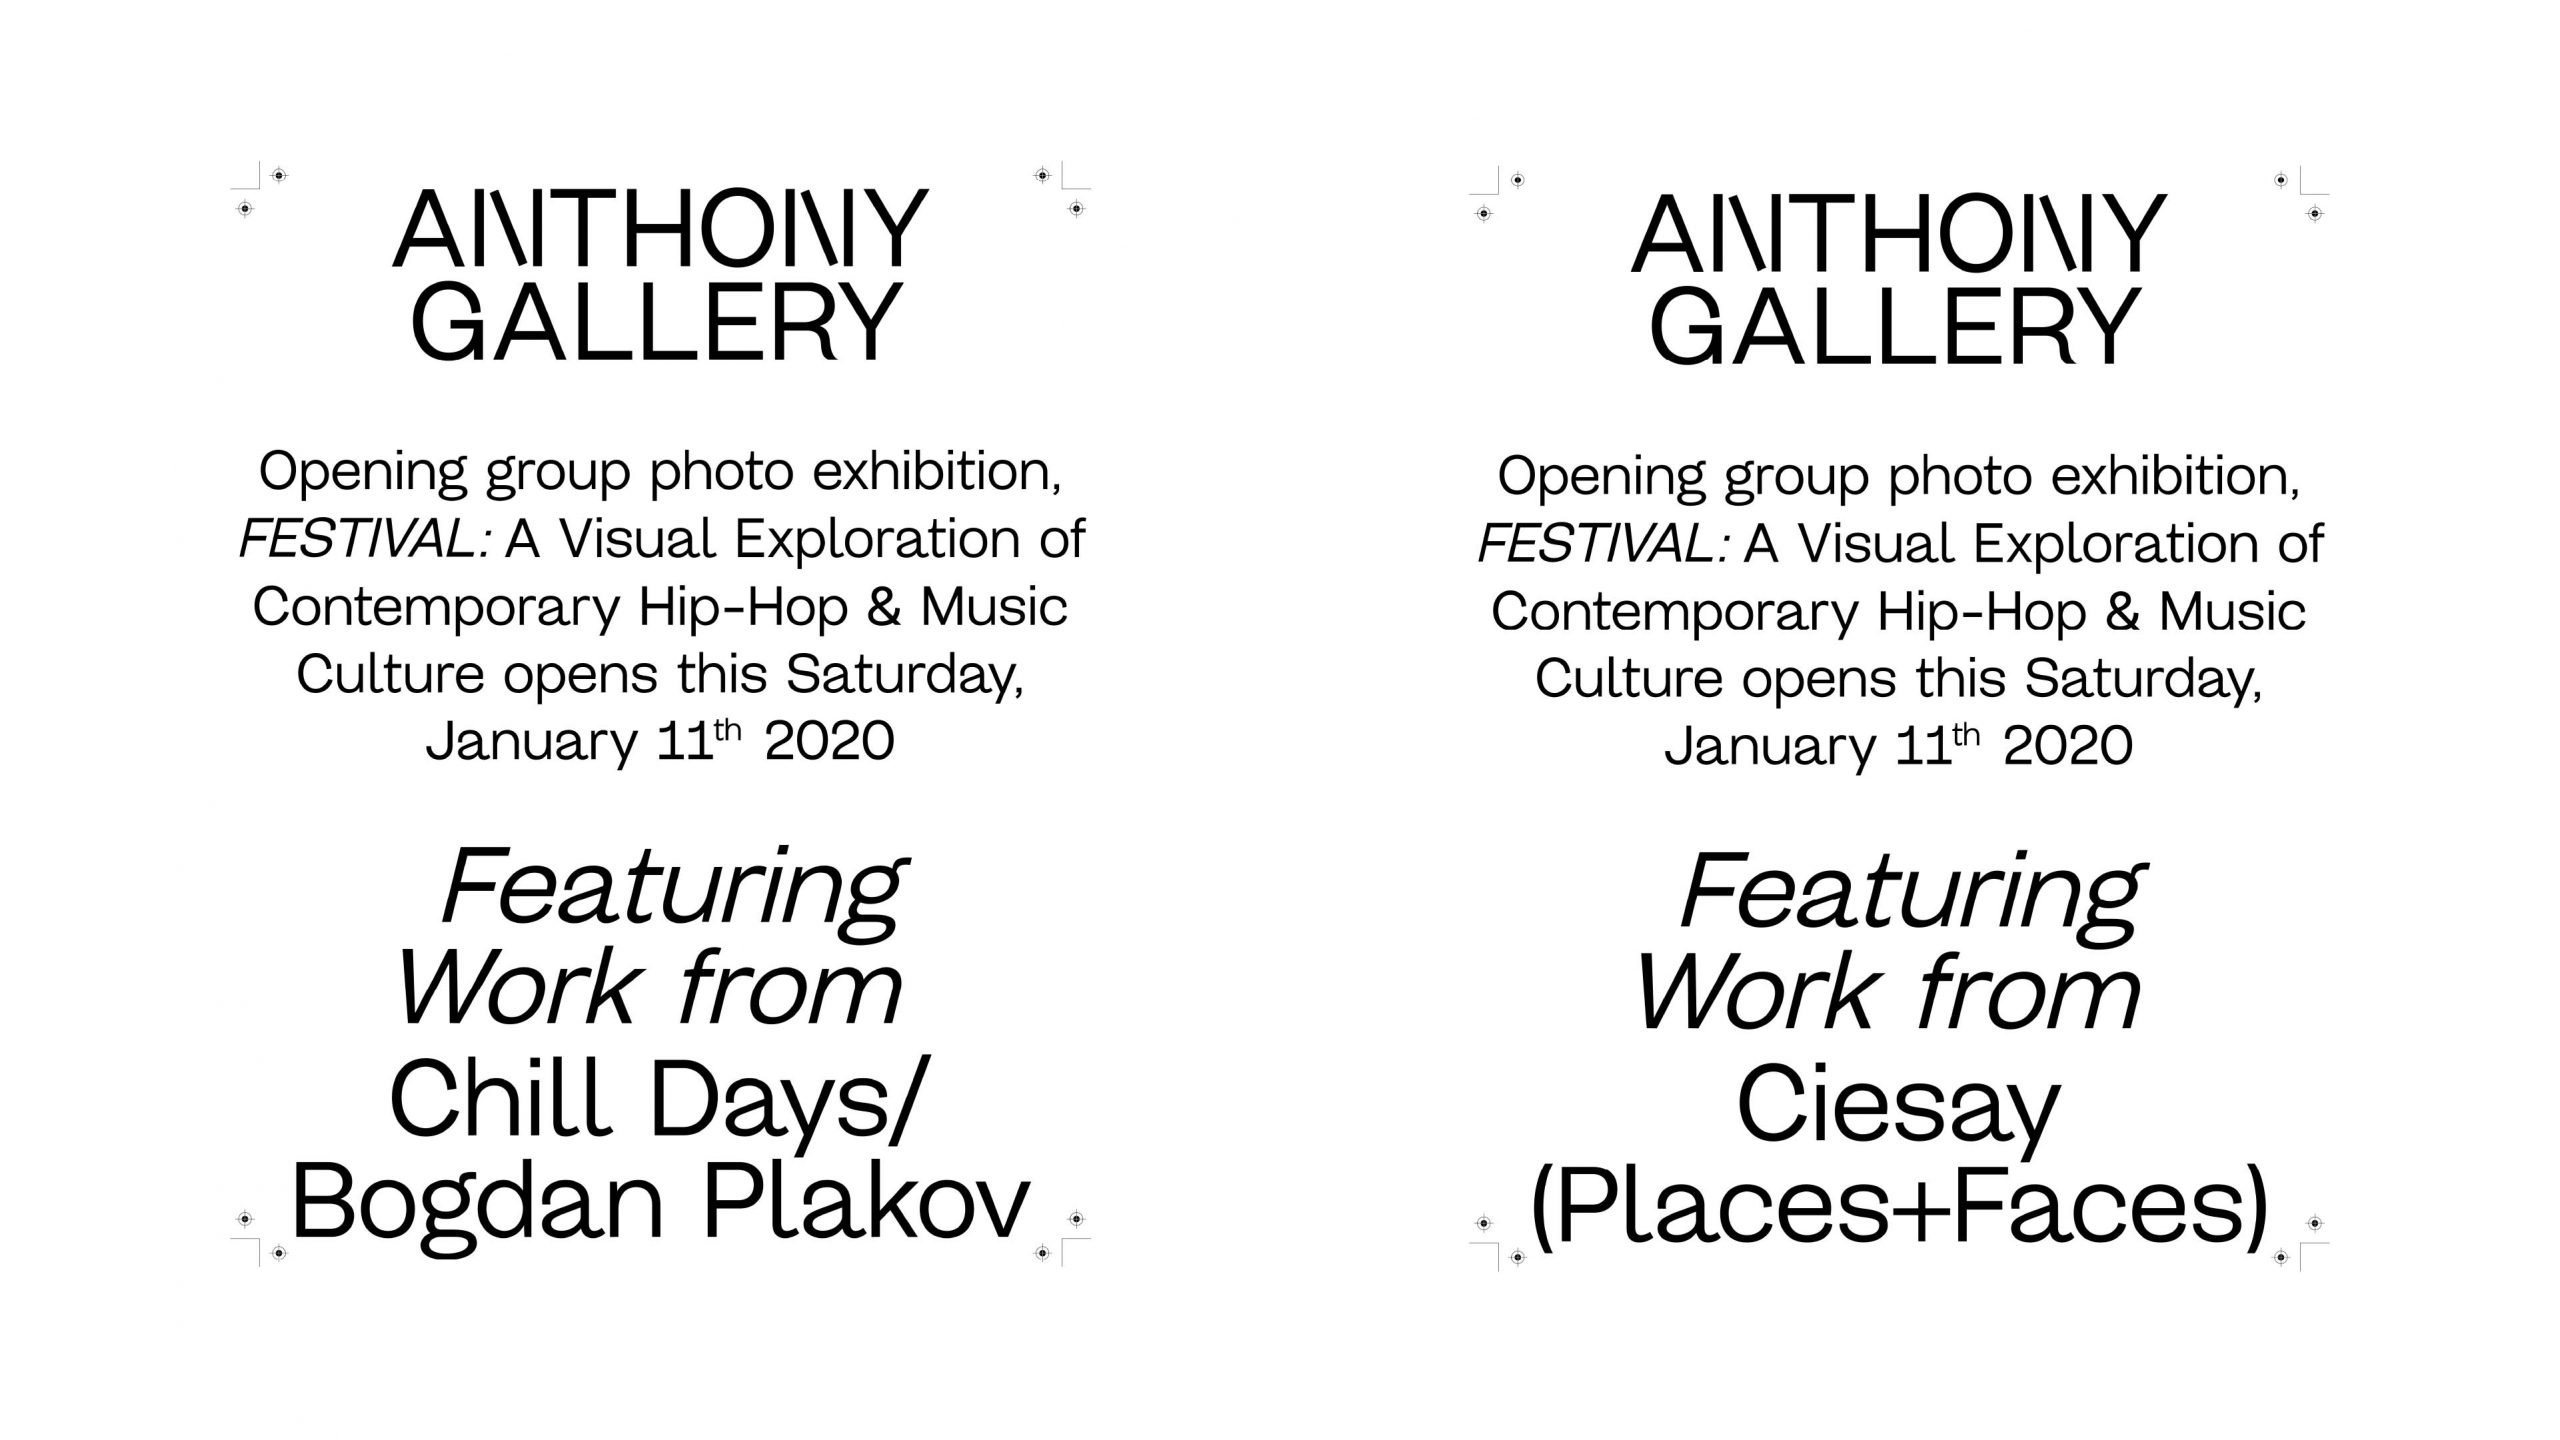 ANTHONY-GALLERY-exhibition-03